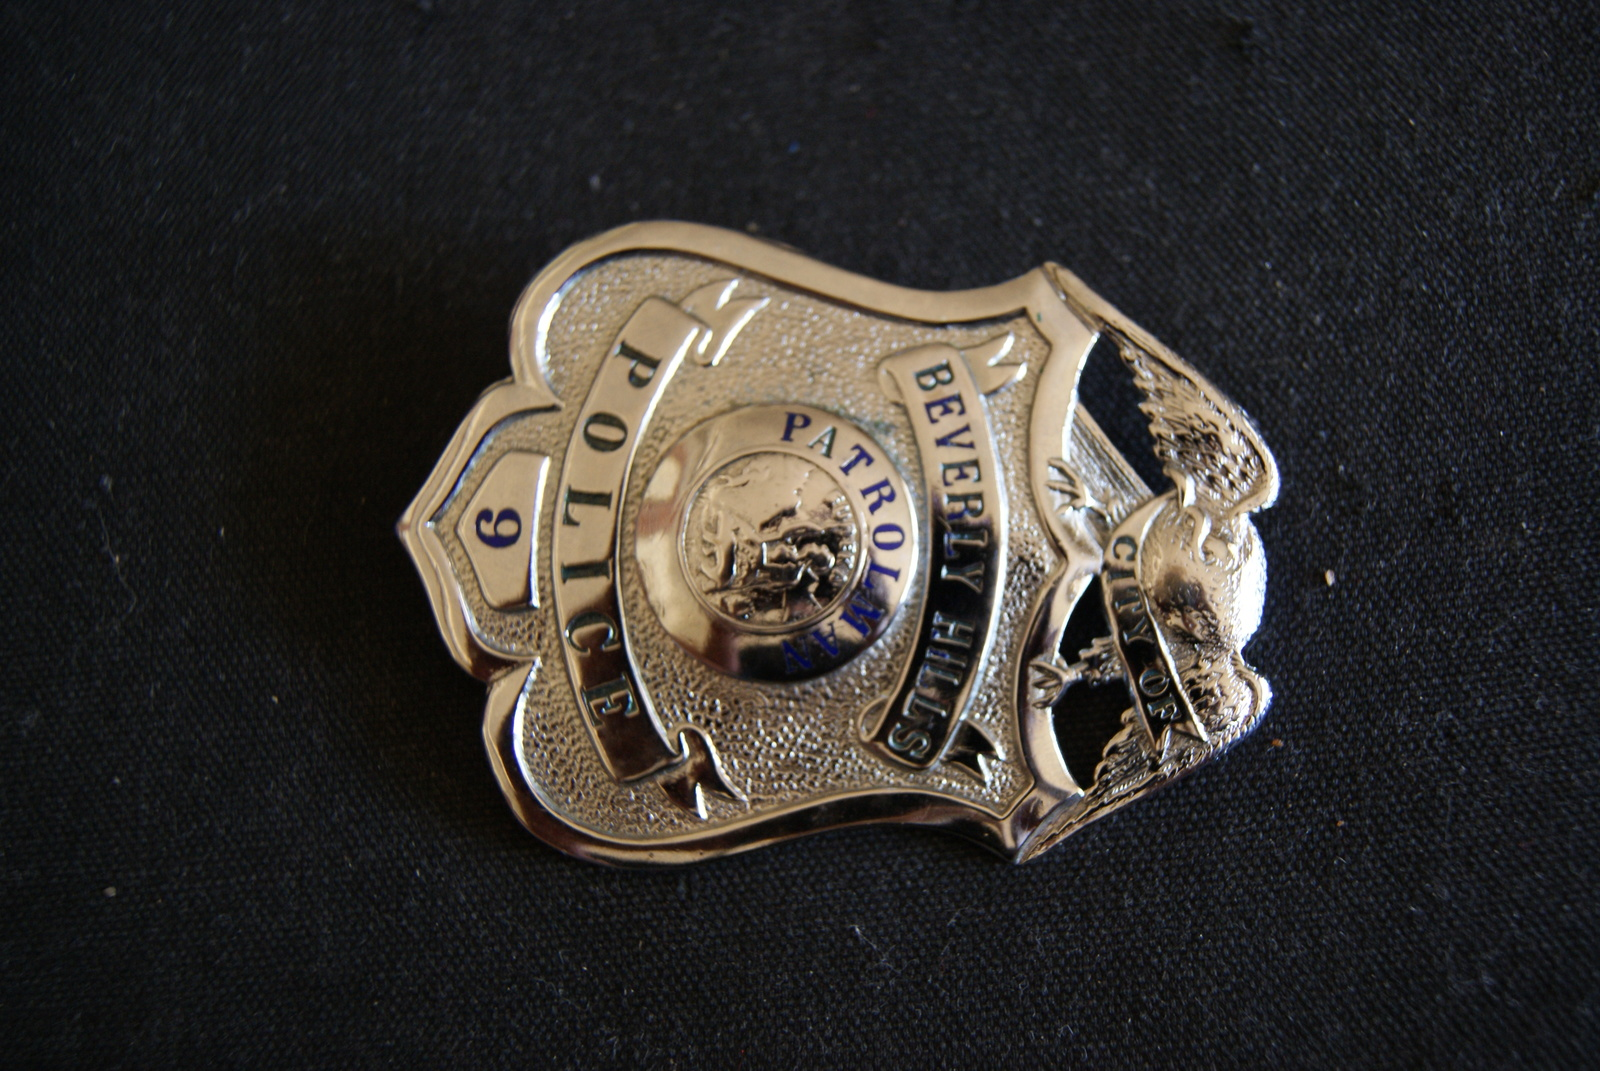 Beverly Hills Cal,Scarce Antique Police Badge W/ Wallet,.Hmk L.A Rubber Stamp Co image 5